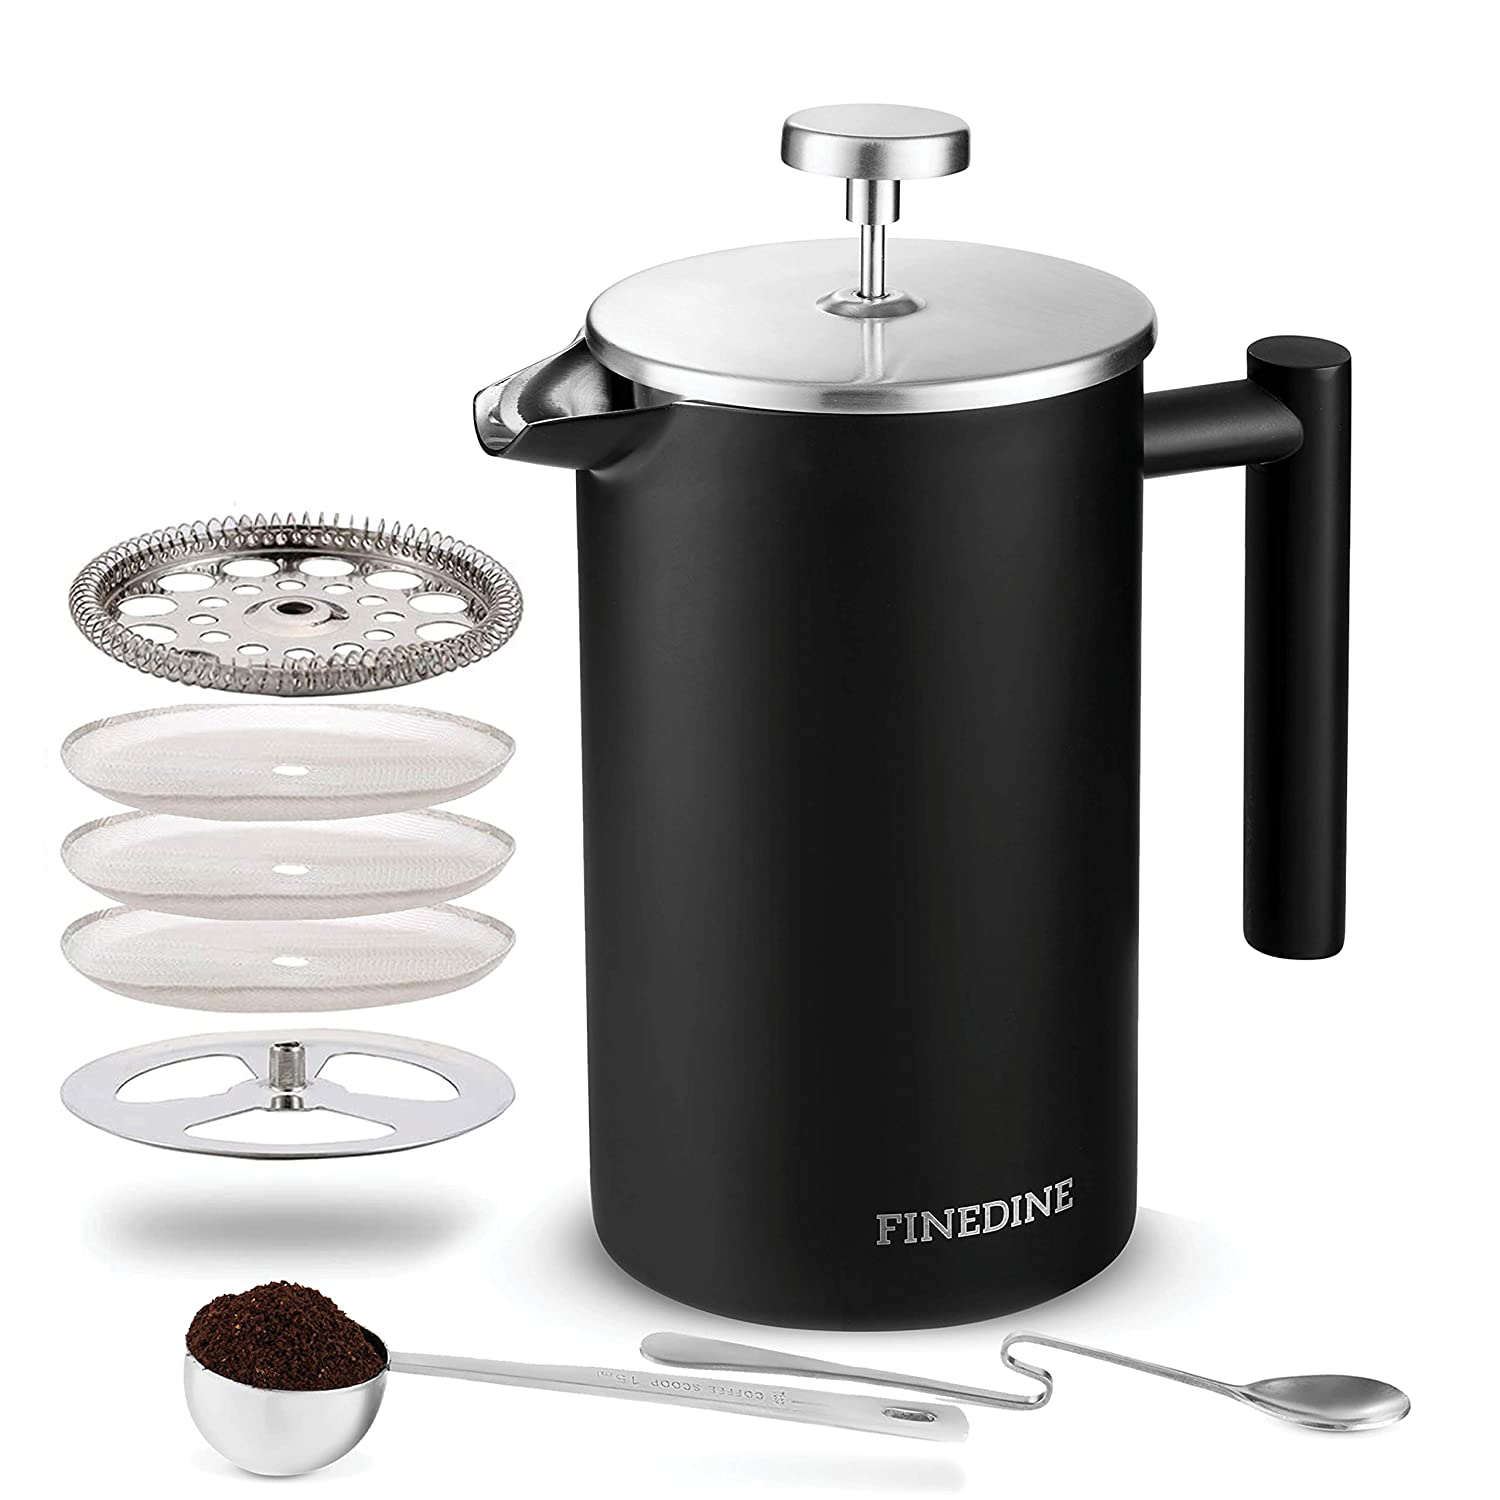 Finedine French Press Coffee Maker – 34-Oz 18 8 Stainless Steel Double Wall Insulated Retains Heat Longer – Triple-Screen Grounds Filter System, Sleek Matte Black, Extra Filter Components Included